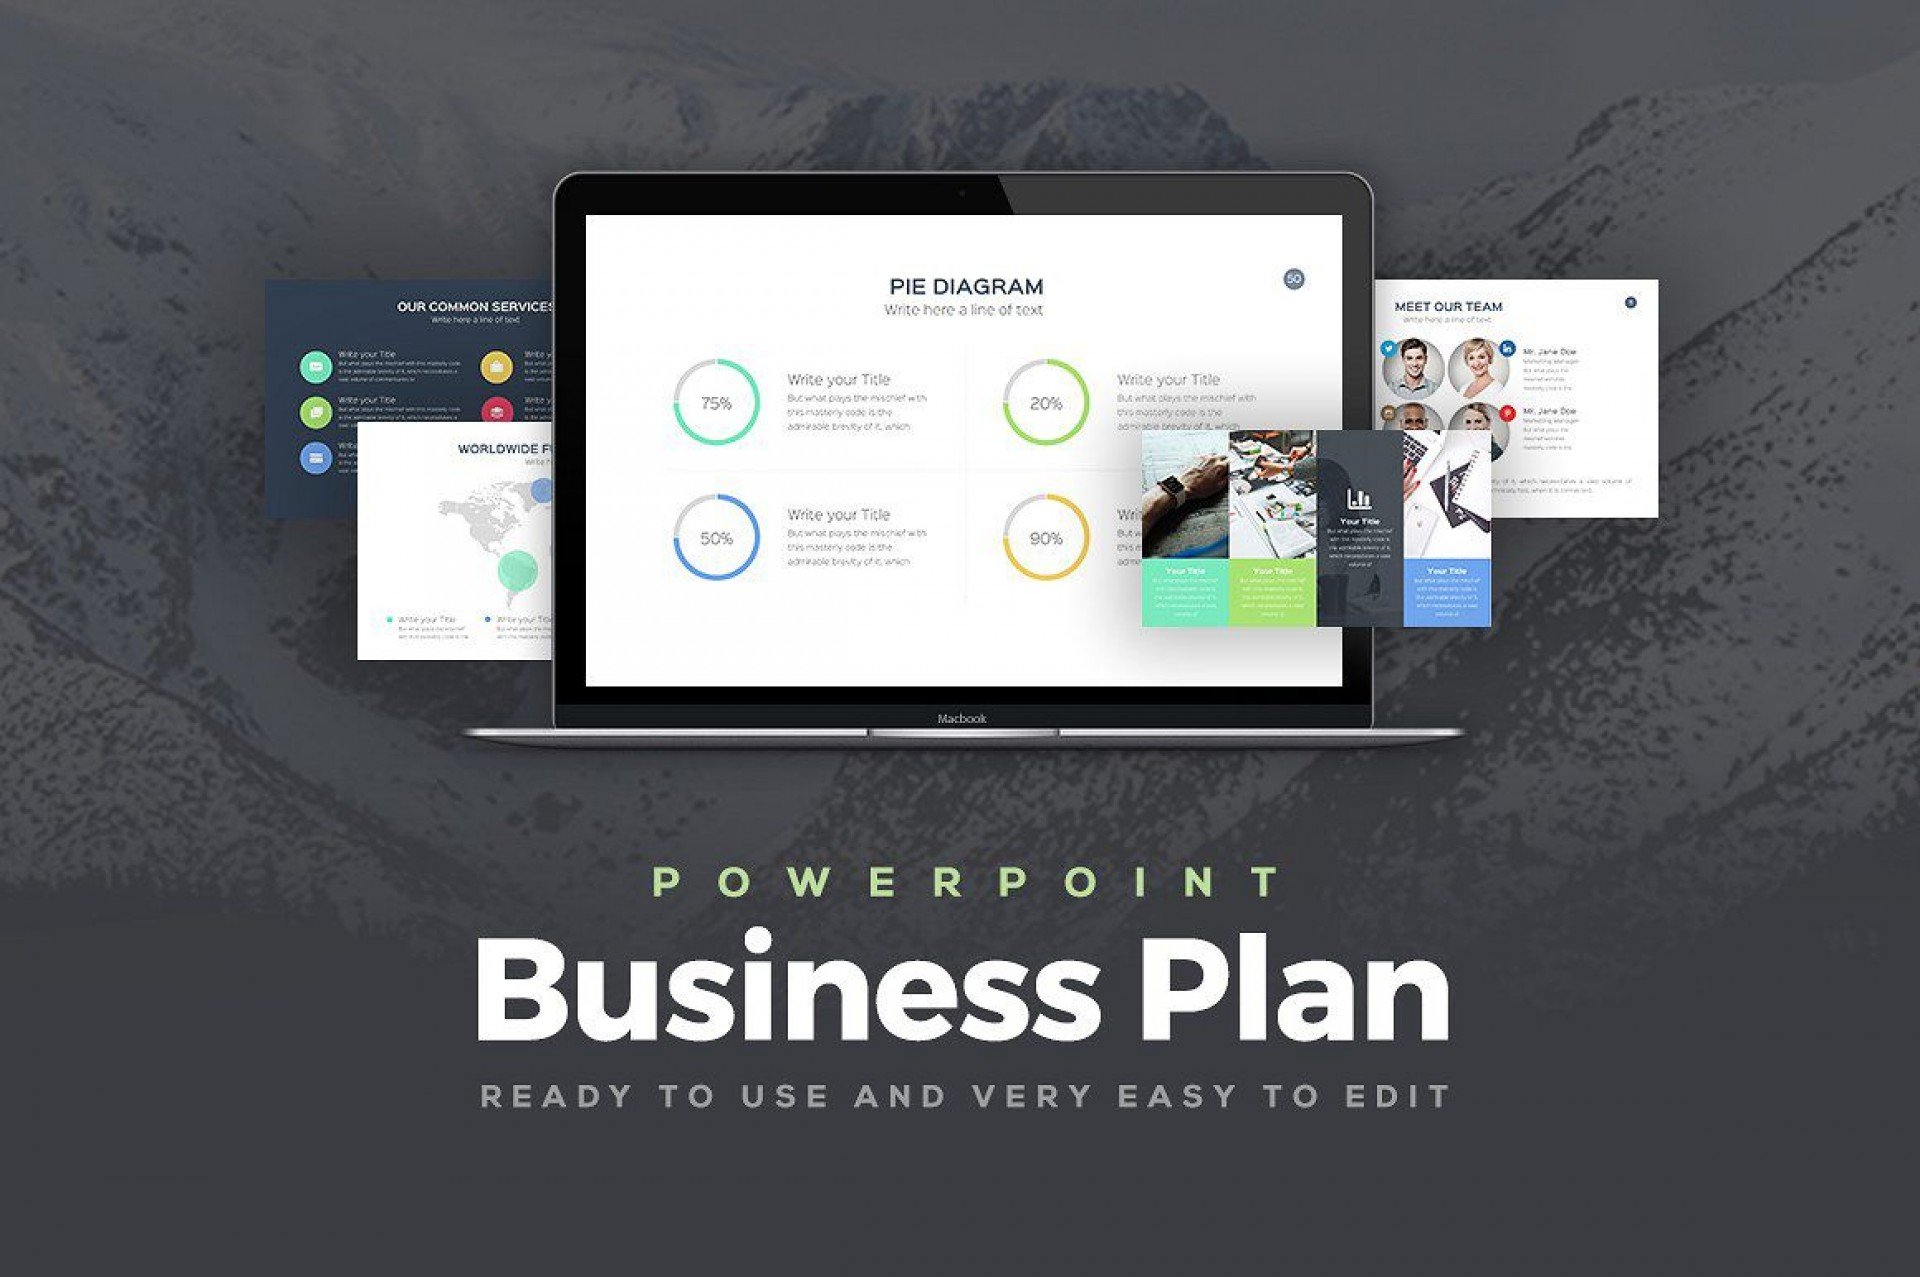 003 Beautiful Free Download Ppt Template For Busines Idea  Presentation Plan1920